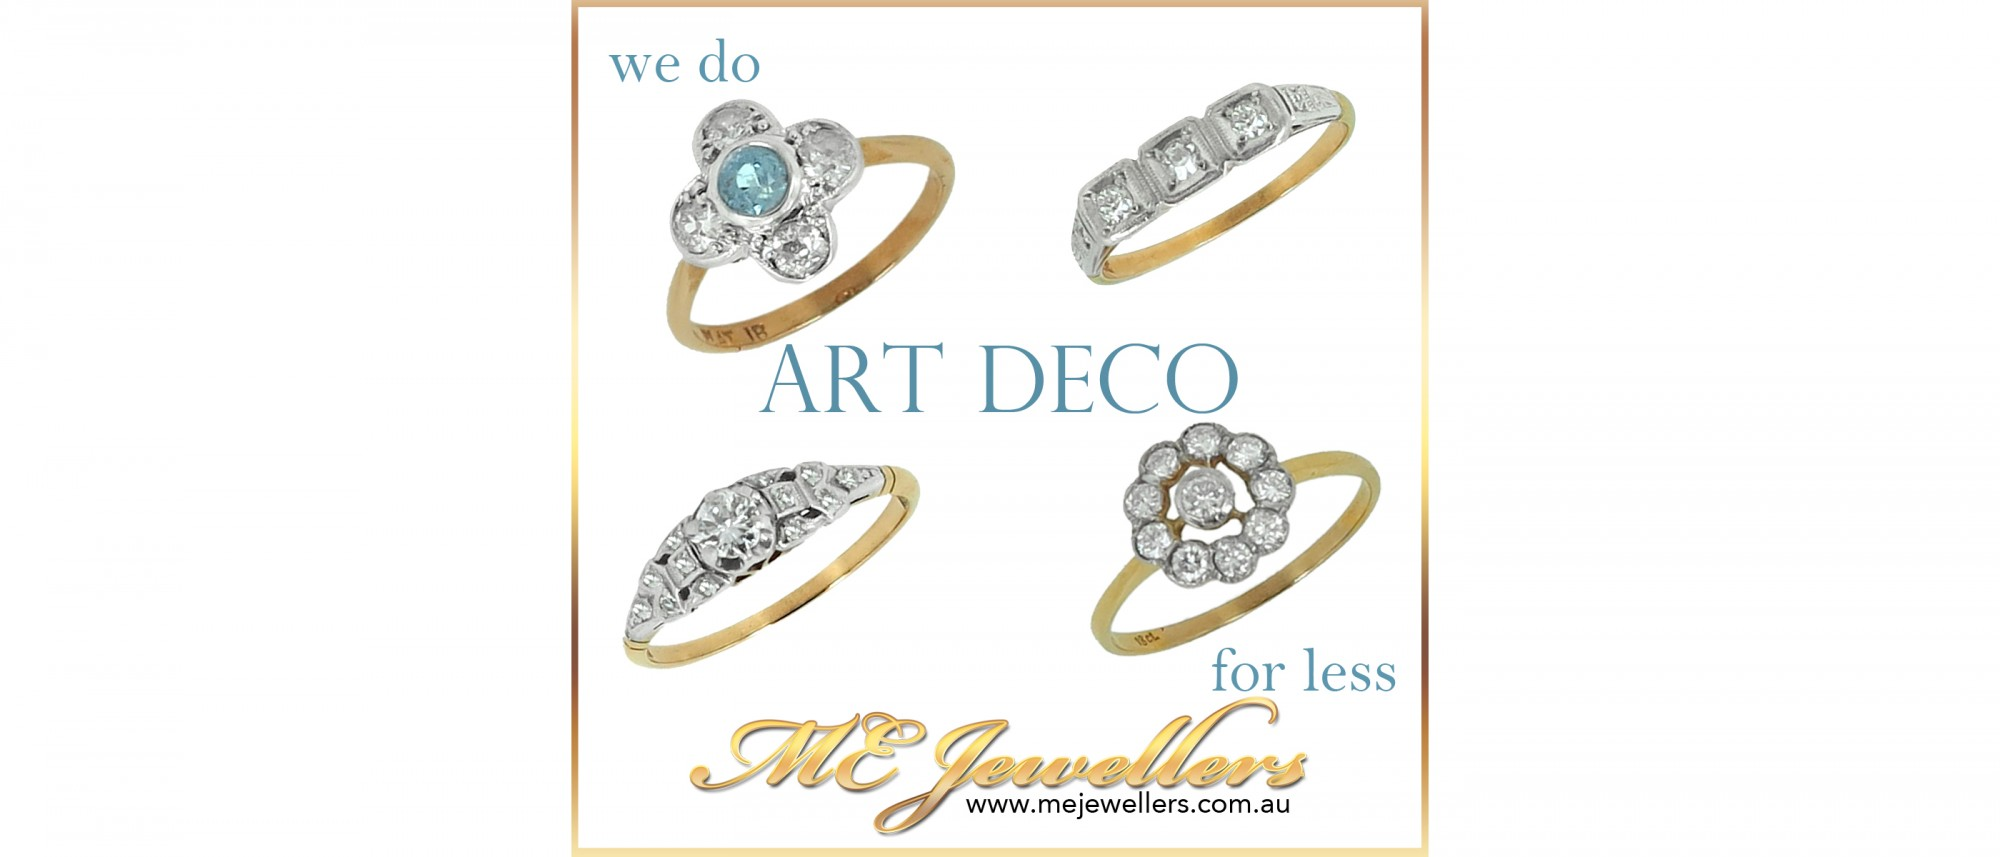 Art Deco Jewellery Amp Engagement Rings For Less